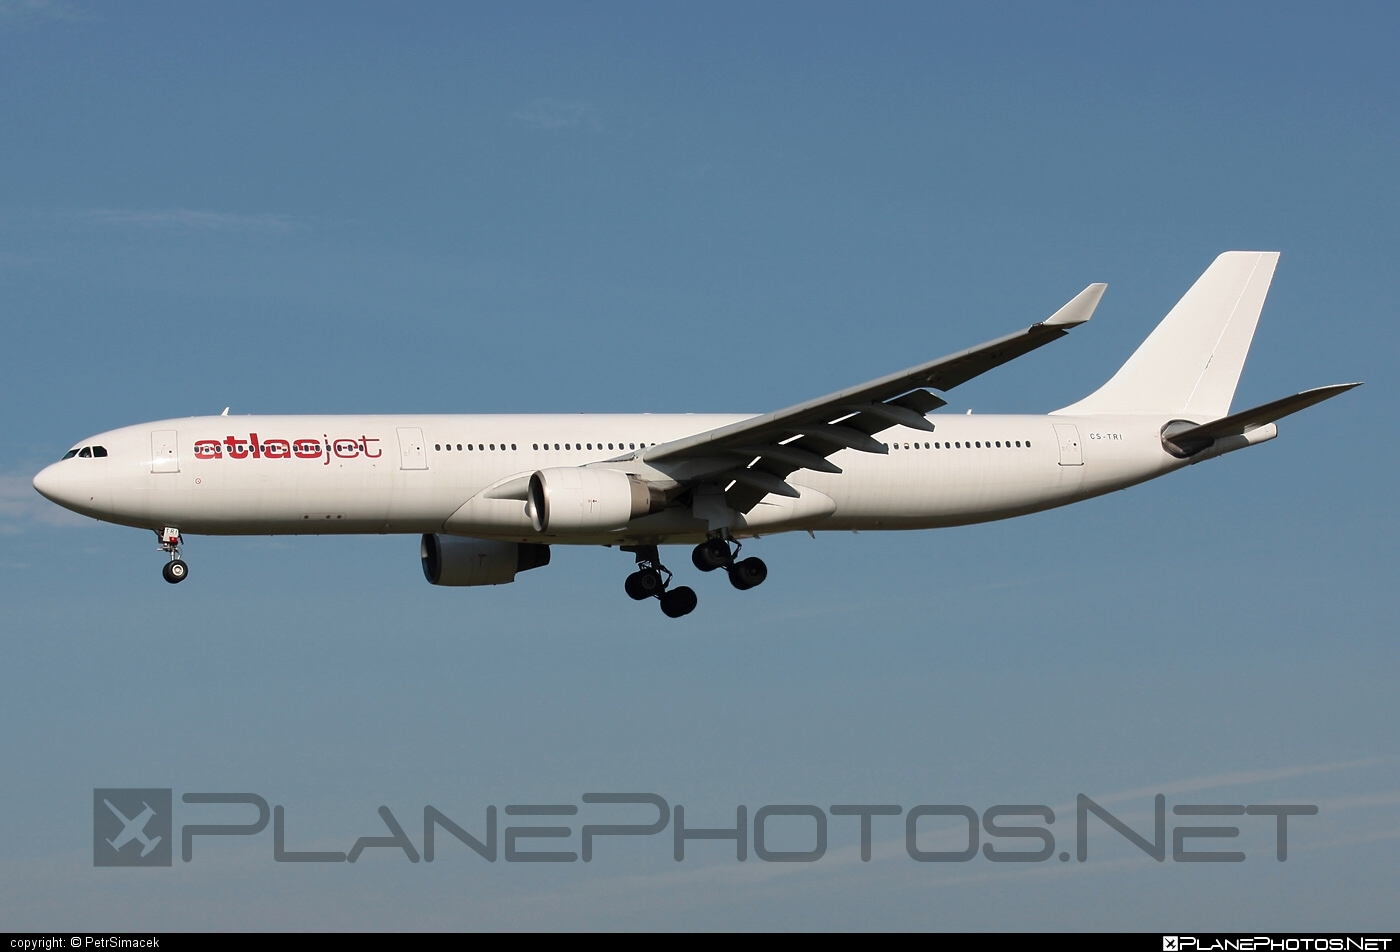 Airbus A330-322 - CS-TRI operated by Atlasjet #a330 #a330family #airbus #airbus330